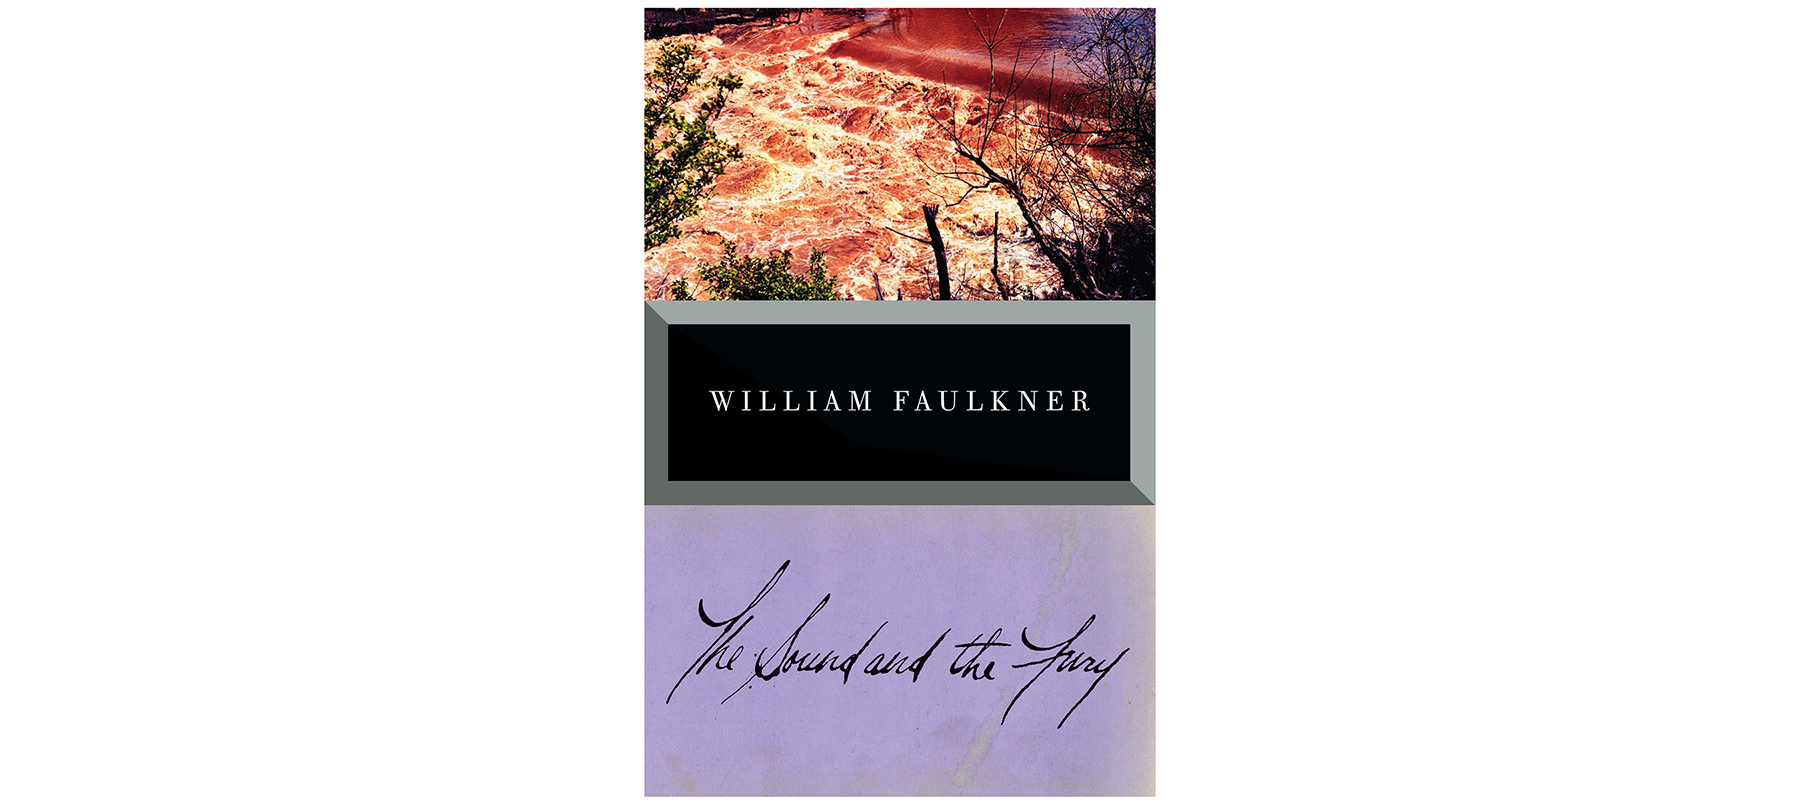 Essay On Health Care The Sound And The Fury By William Faulkner English Essay Introduction Example also Example Of An Essay Proposal Classic Books That Will Make You Forget Your Smartphone  Real Simple Research Proposal Essay